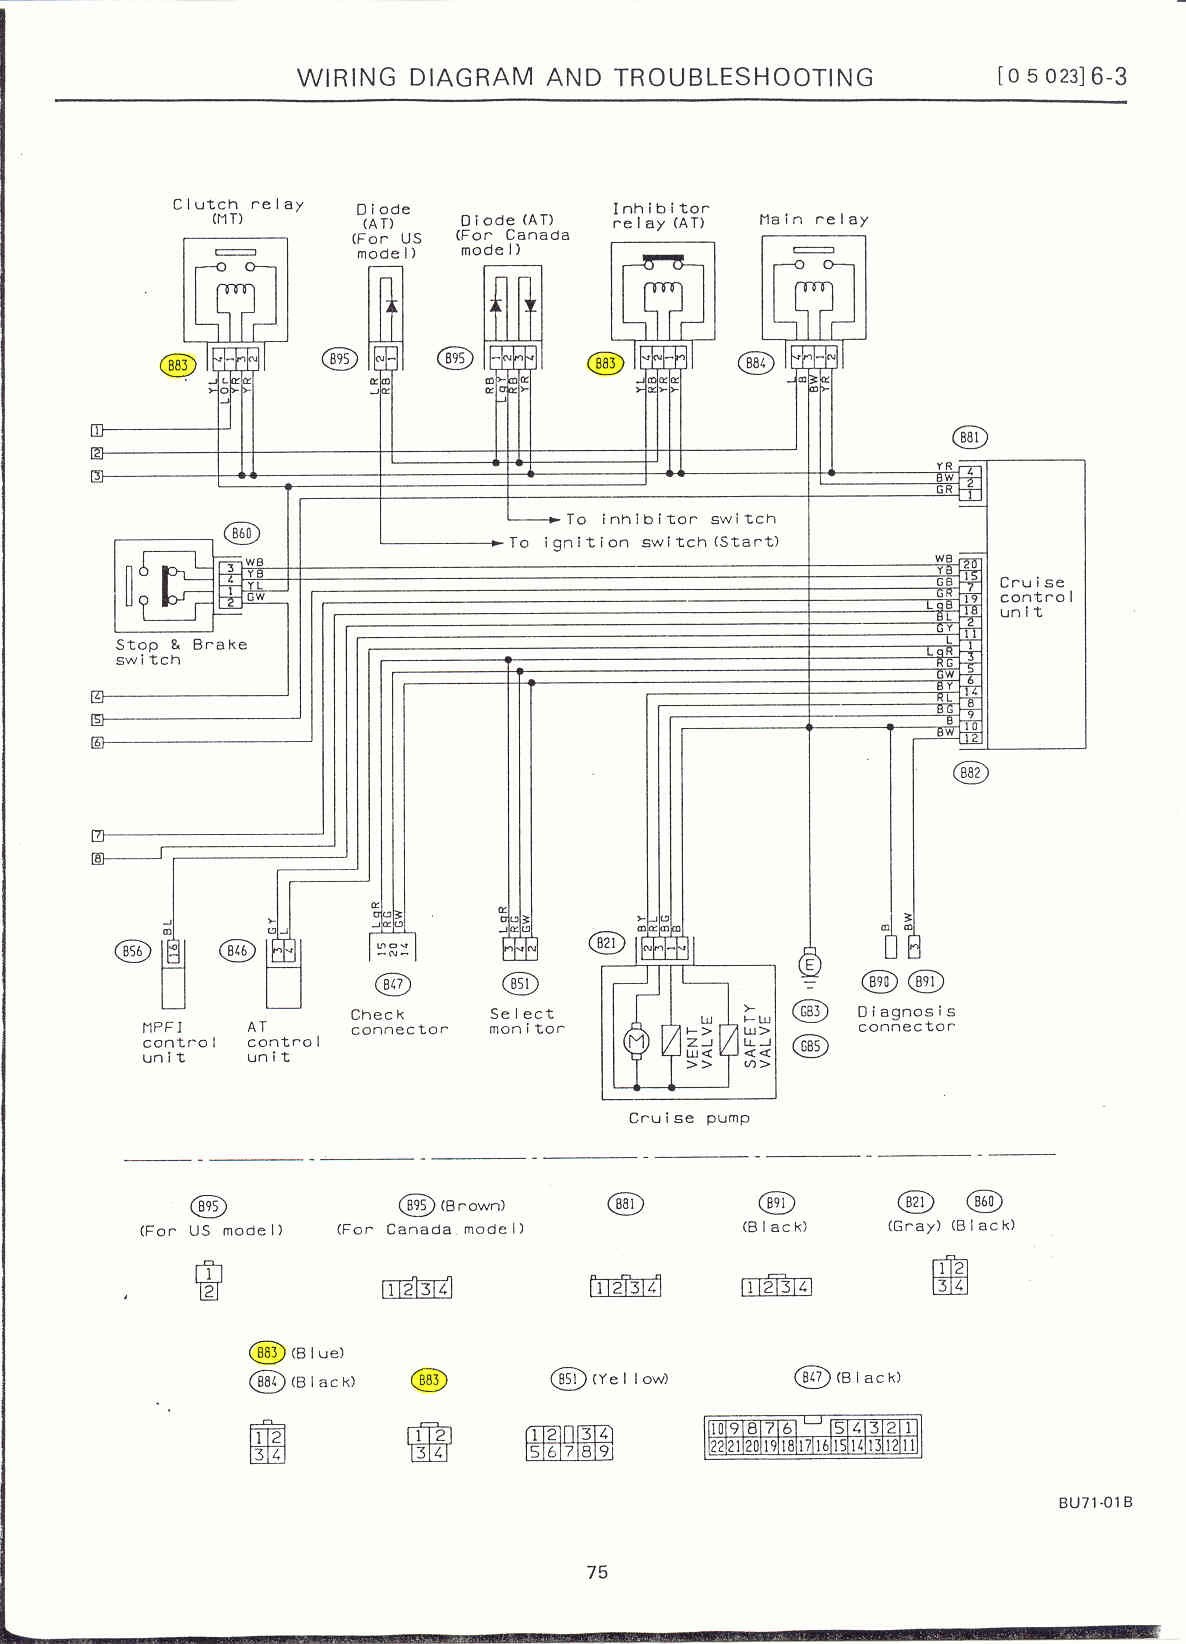 96 Subaru Impreza Wiring Diagram -Code 3 Excalibur Wiring Diagram | Begeboy Wiring  Diagram SourceBegeboy Wiring Diagram Source